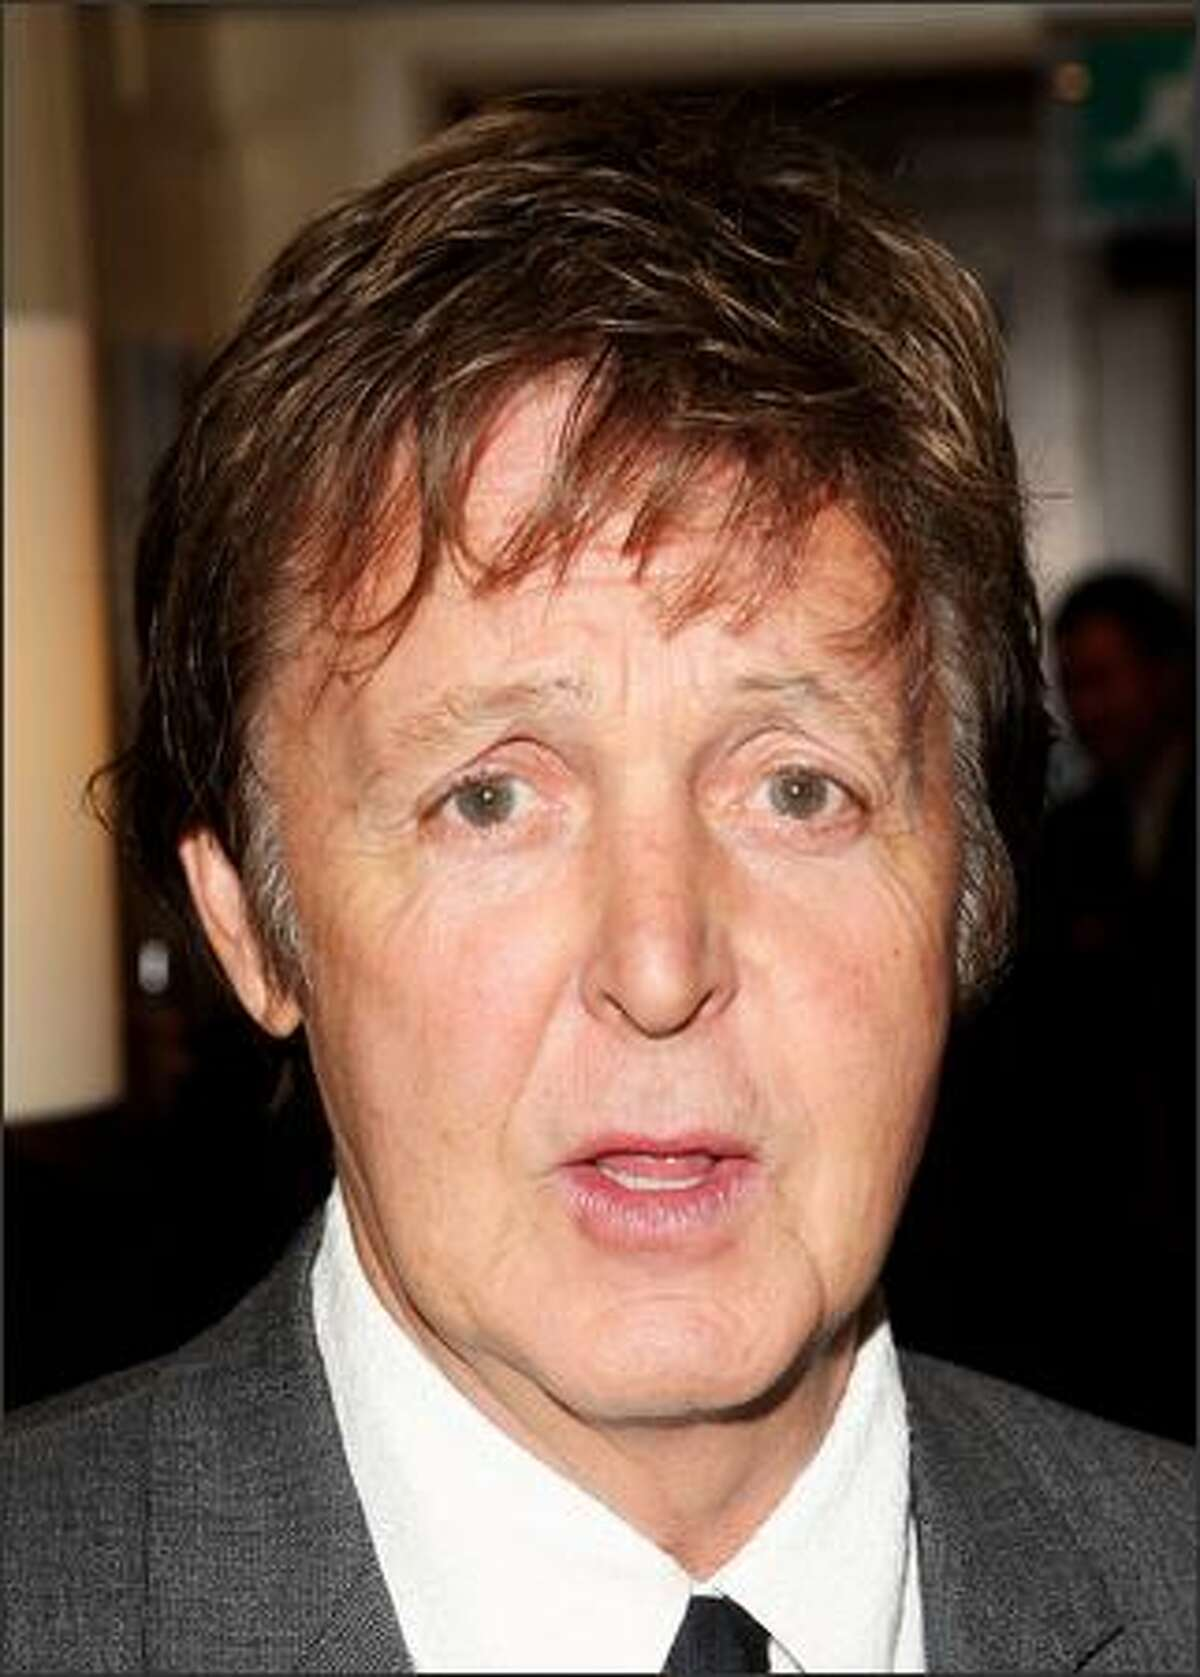 Sir Paul McCartney poses at the Grosvenor Hotel on October 8, 2007 in London, England.